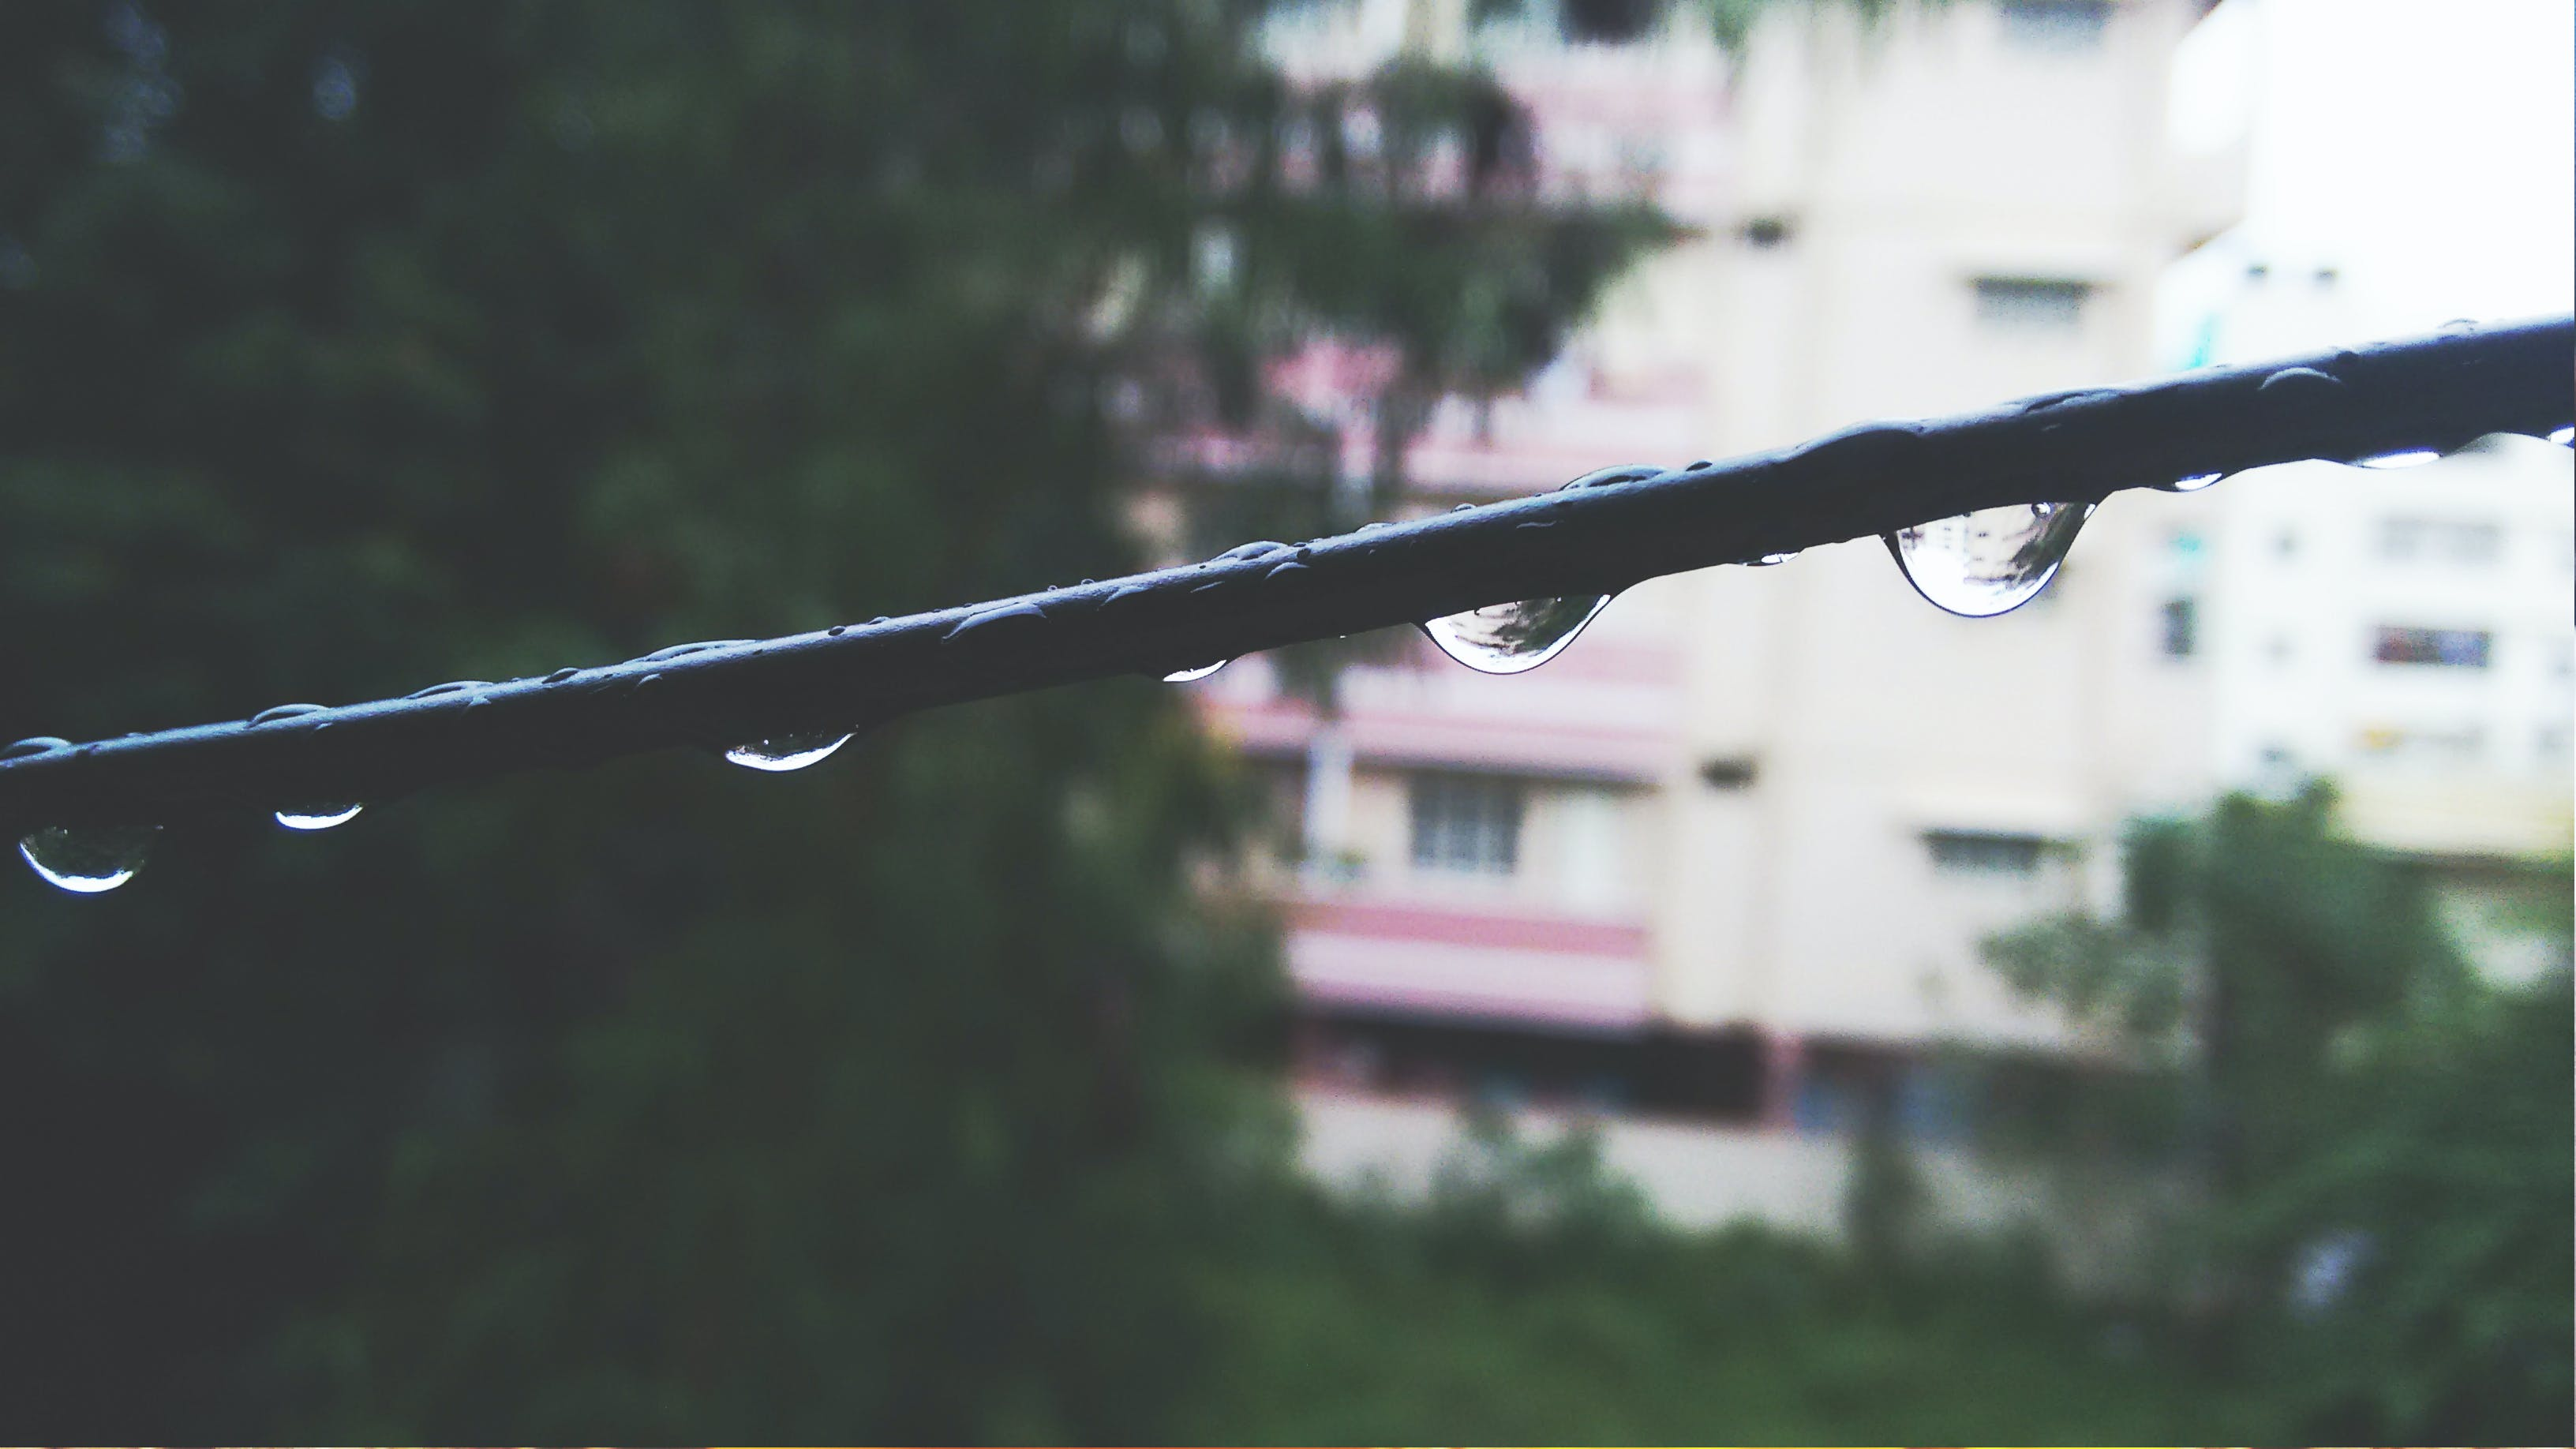 Selective Focus Photo of Water on Black Metal Rod